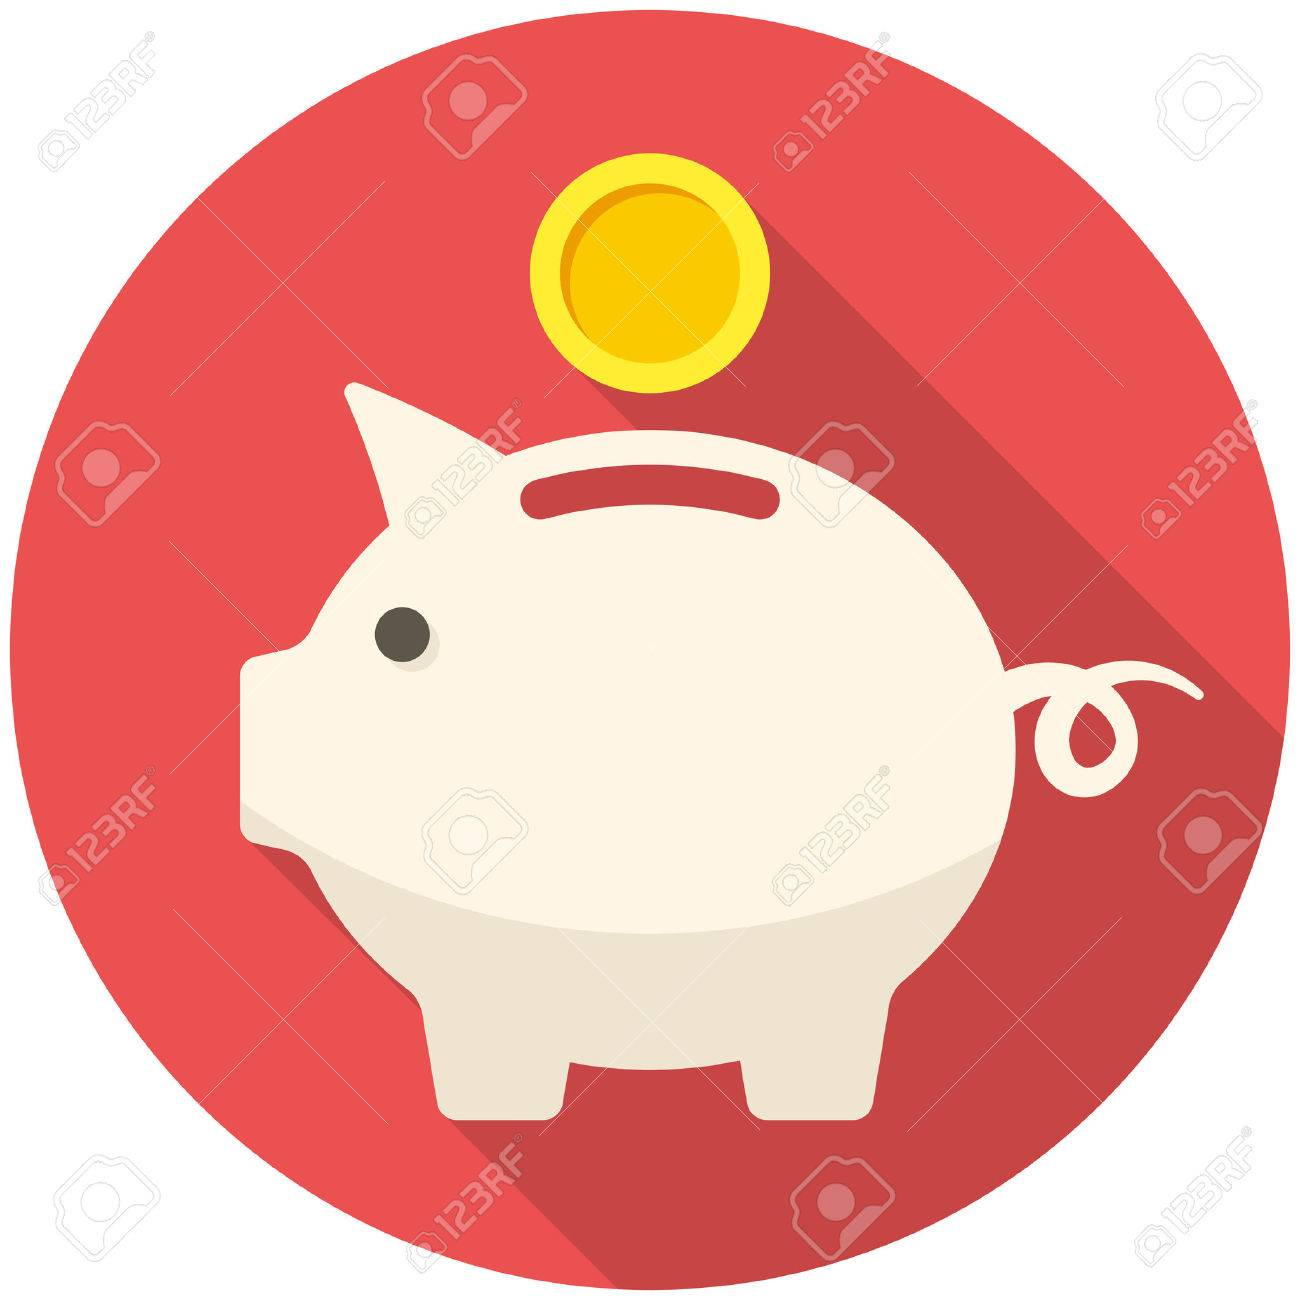 Piggy bank icon (flat design with long shadows) - 33411622